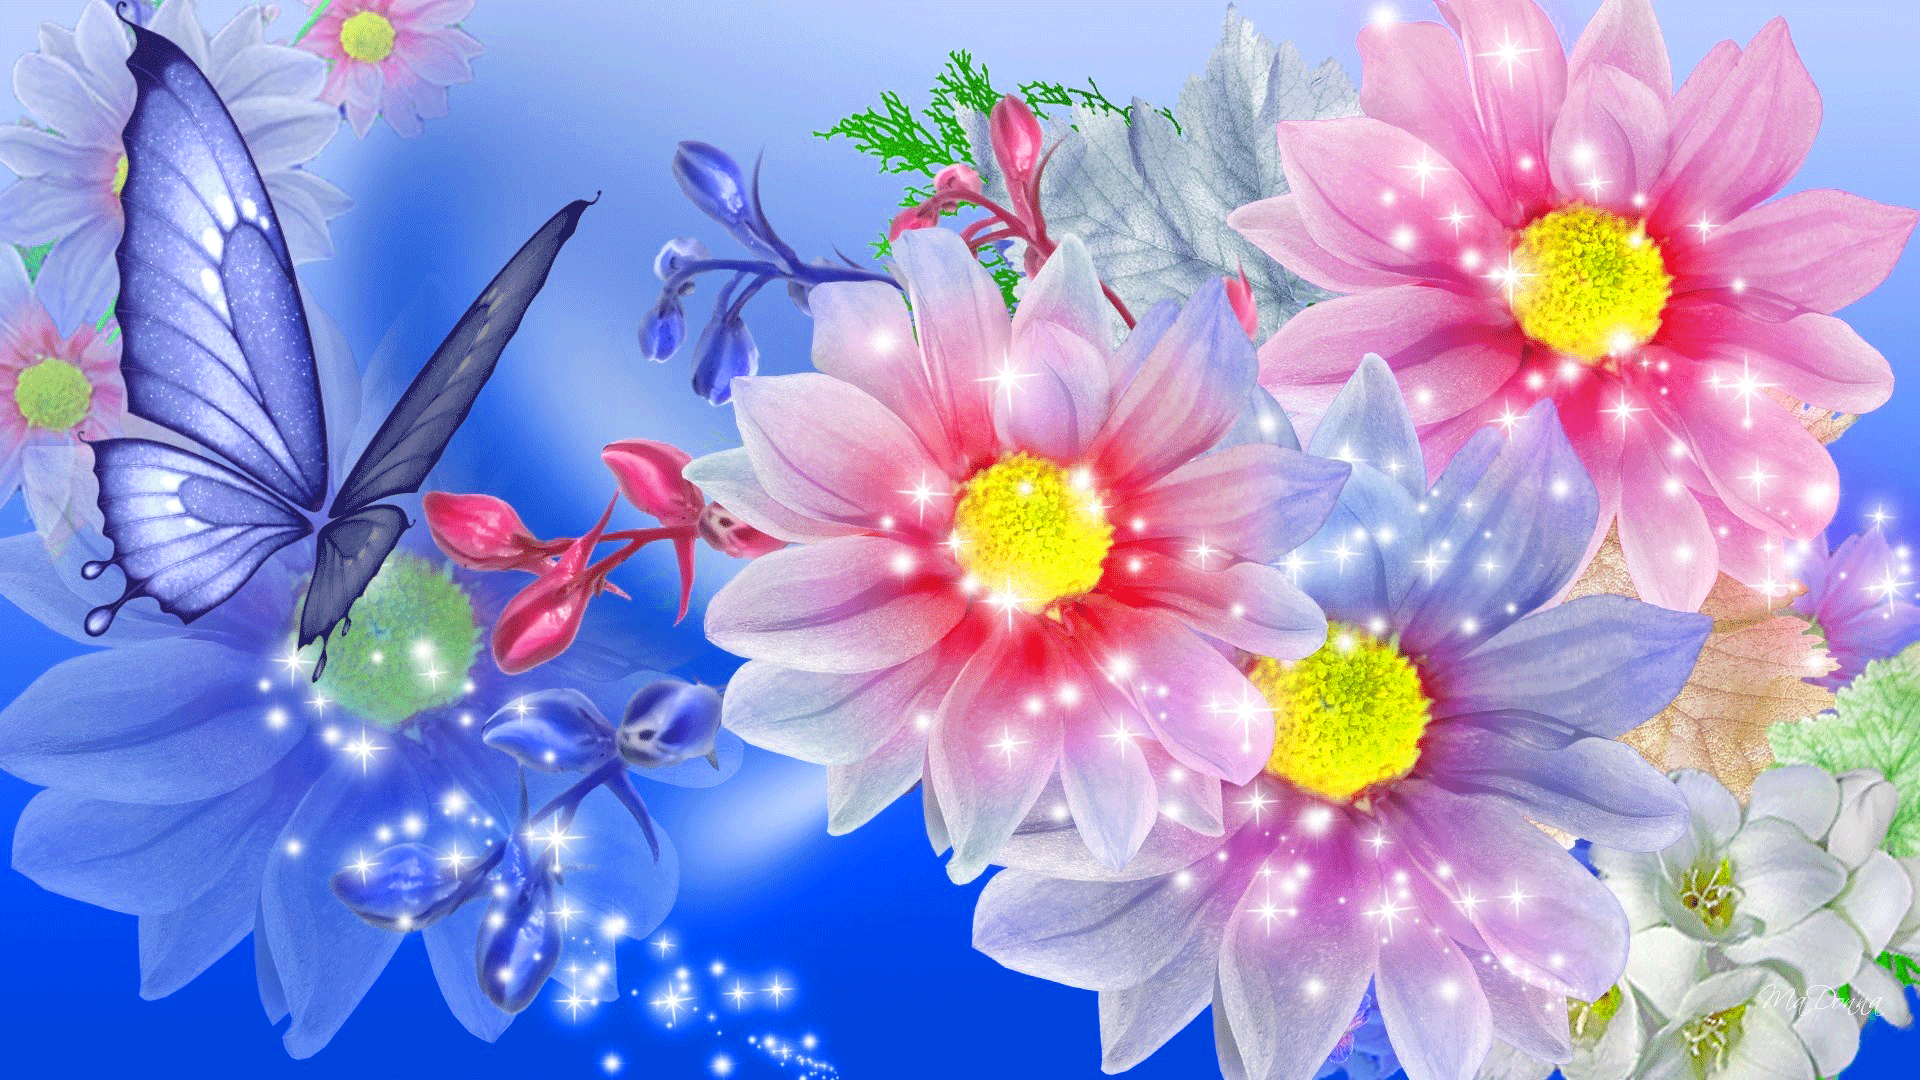 Fantasy Phone Wallpaper Woth Quote Pics Of Beautiful Flowers For Whatsapp Dp Impremedia Net